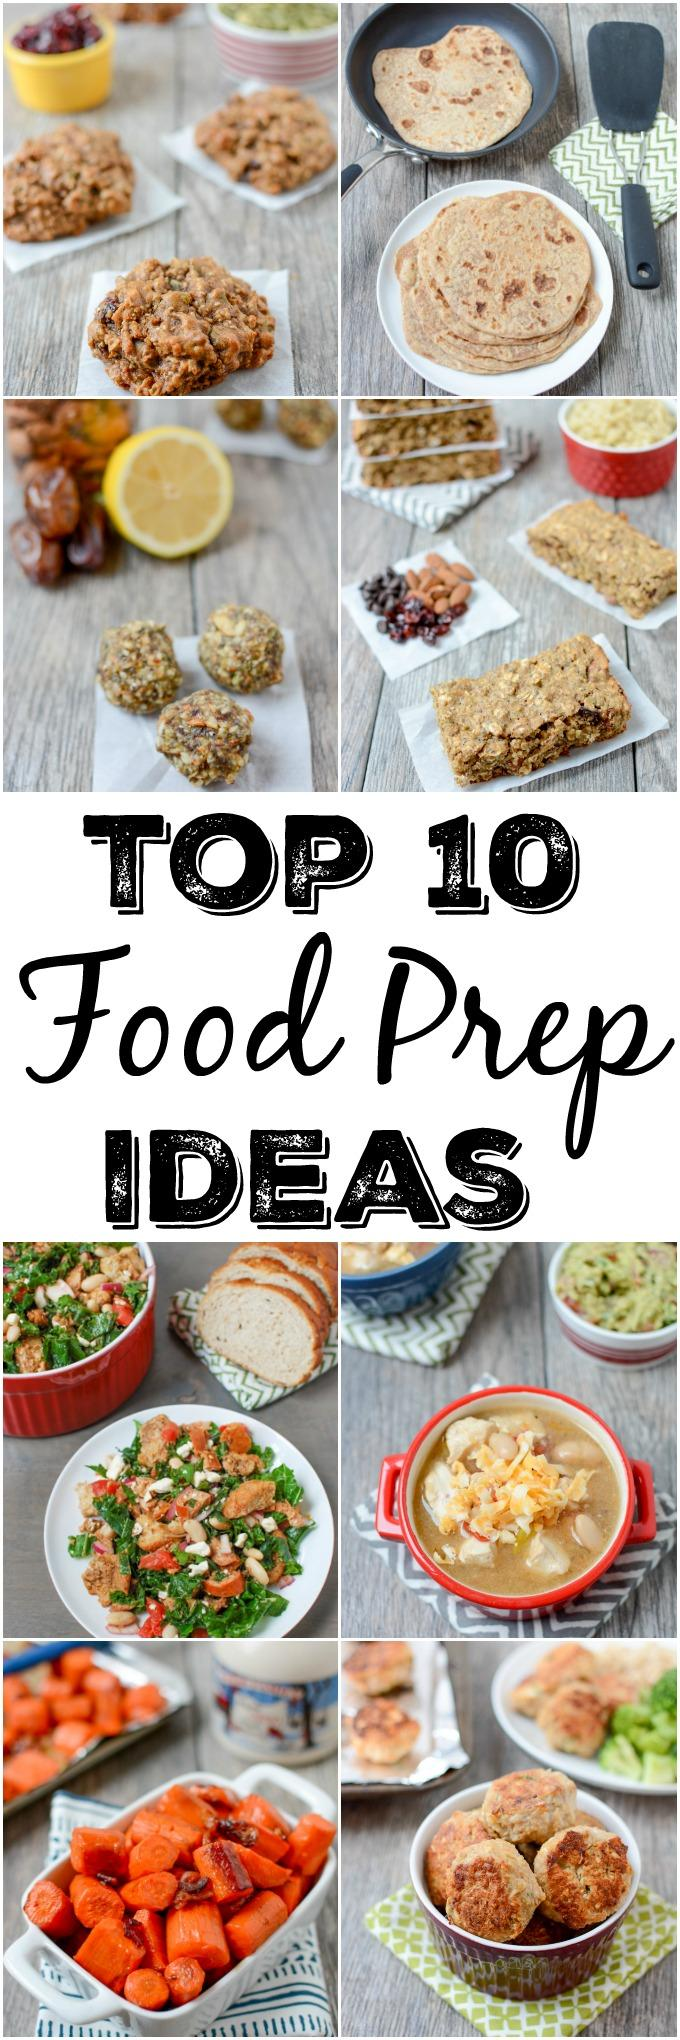 Food Prep is a key tool for helping you and your family eat healthier during the week. Here are 10 foods and recipes that are great for doing meal prep ahead of time.